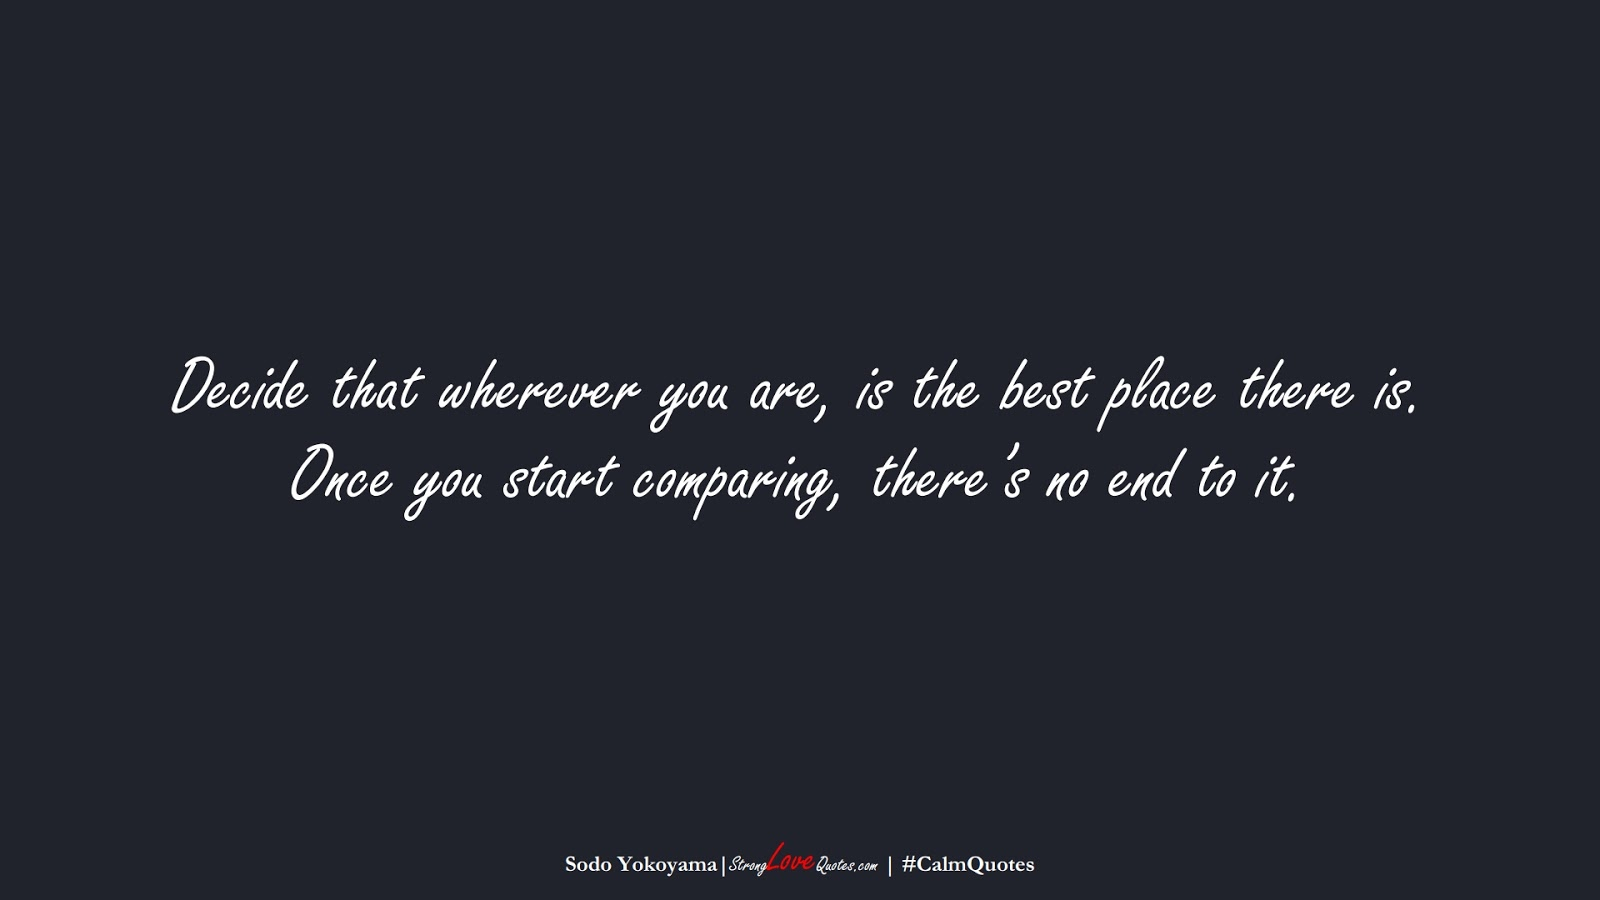 Decide that wherever you are, is the best place there is. Once you start comparing, there's no end to it. (Sodo Yokoyama);  #CalmQuotes